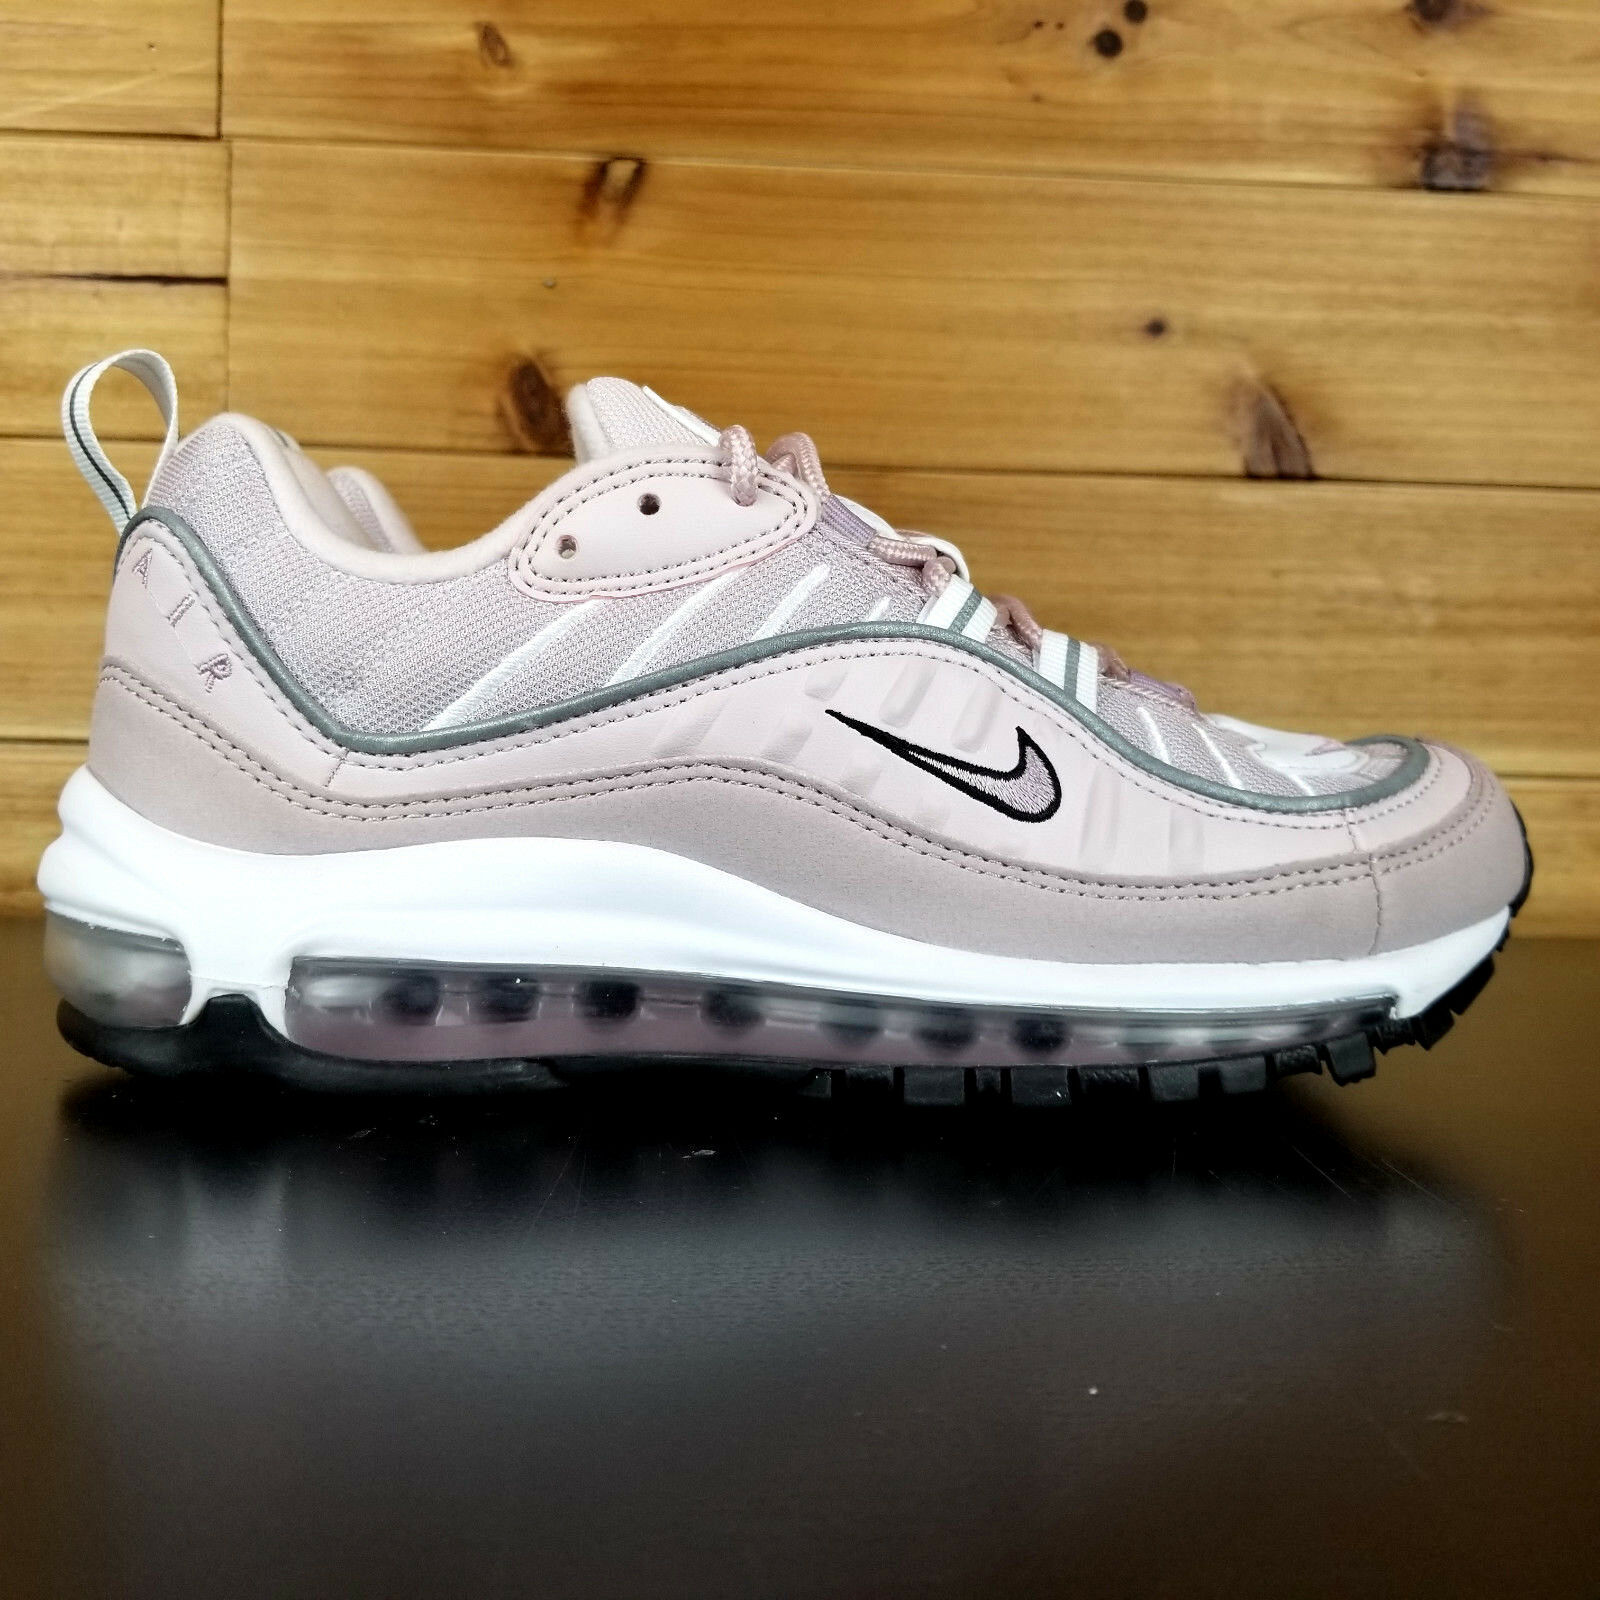 Nike Air Max 98 Women's shoes pink PINK LIGHT RED WHITE OFF AH6799-600